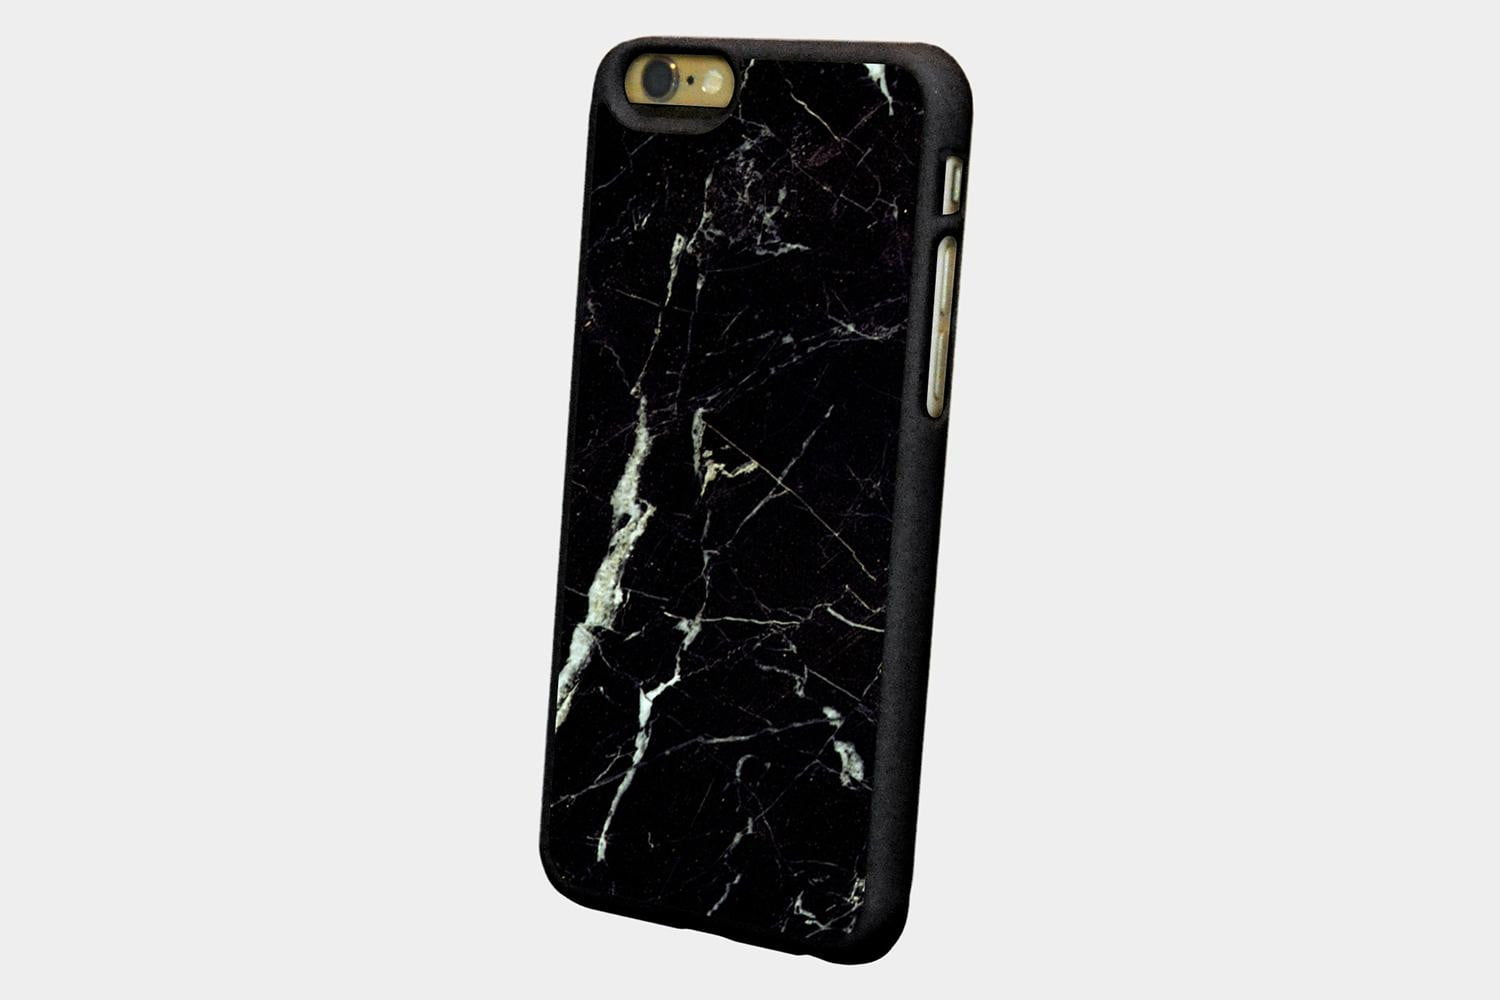 the best iphone 6 cases and covers digital trendsmikol nero marquina case ($100) mikol nero marquina case_ premium iphone cases